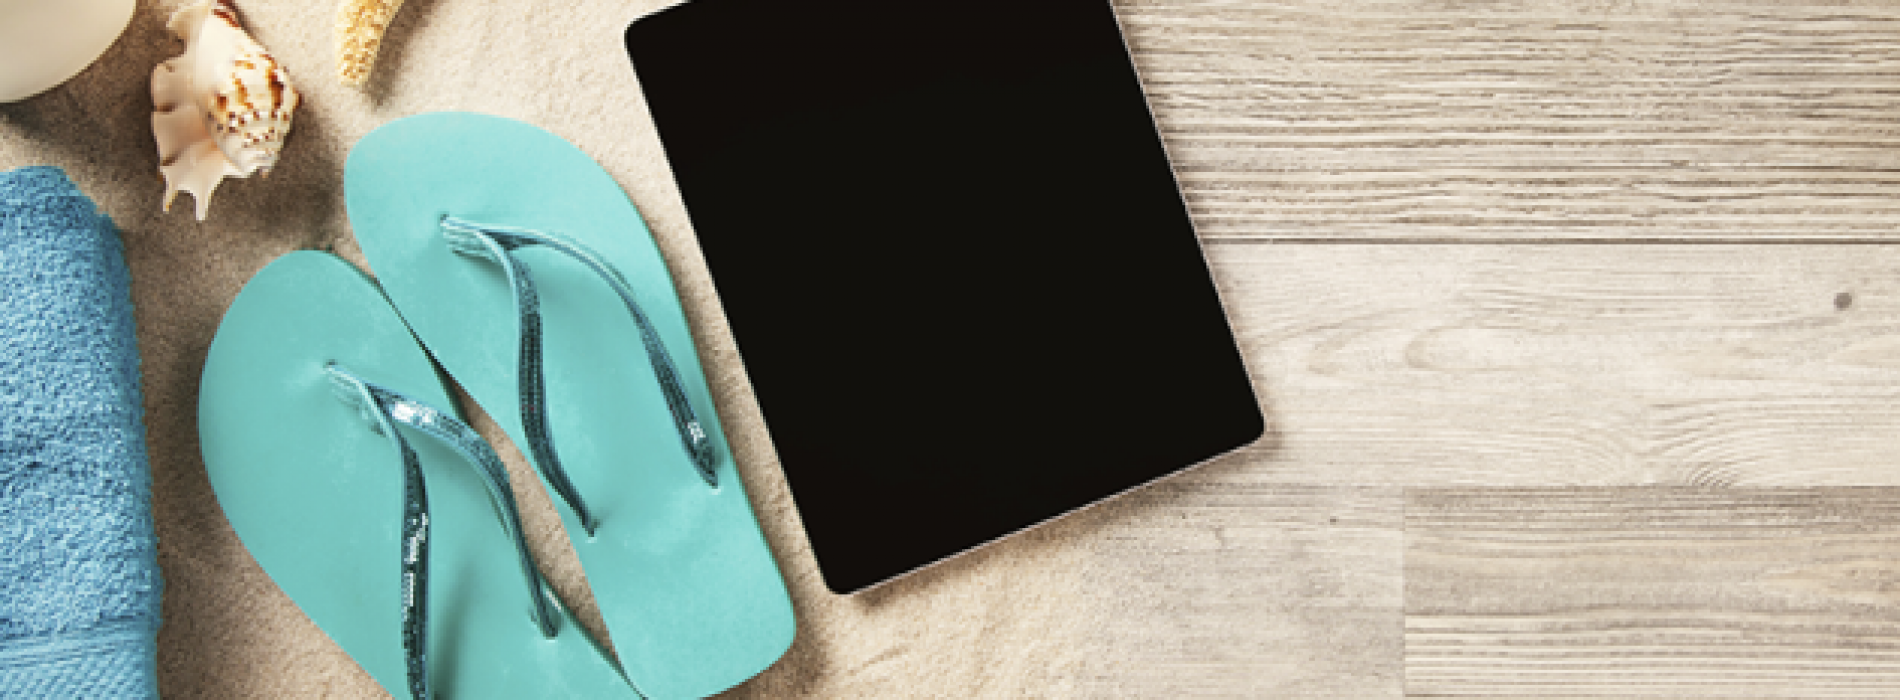 Alleged Nexus 9 (Flounder) image turns out to be a dud